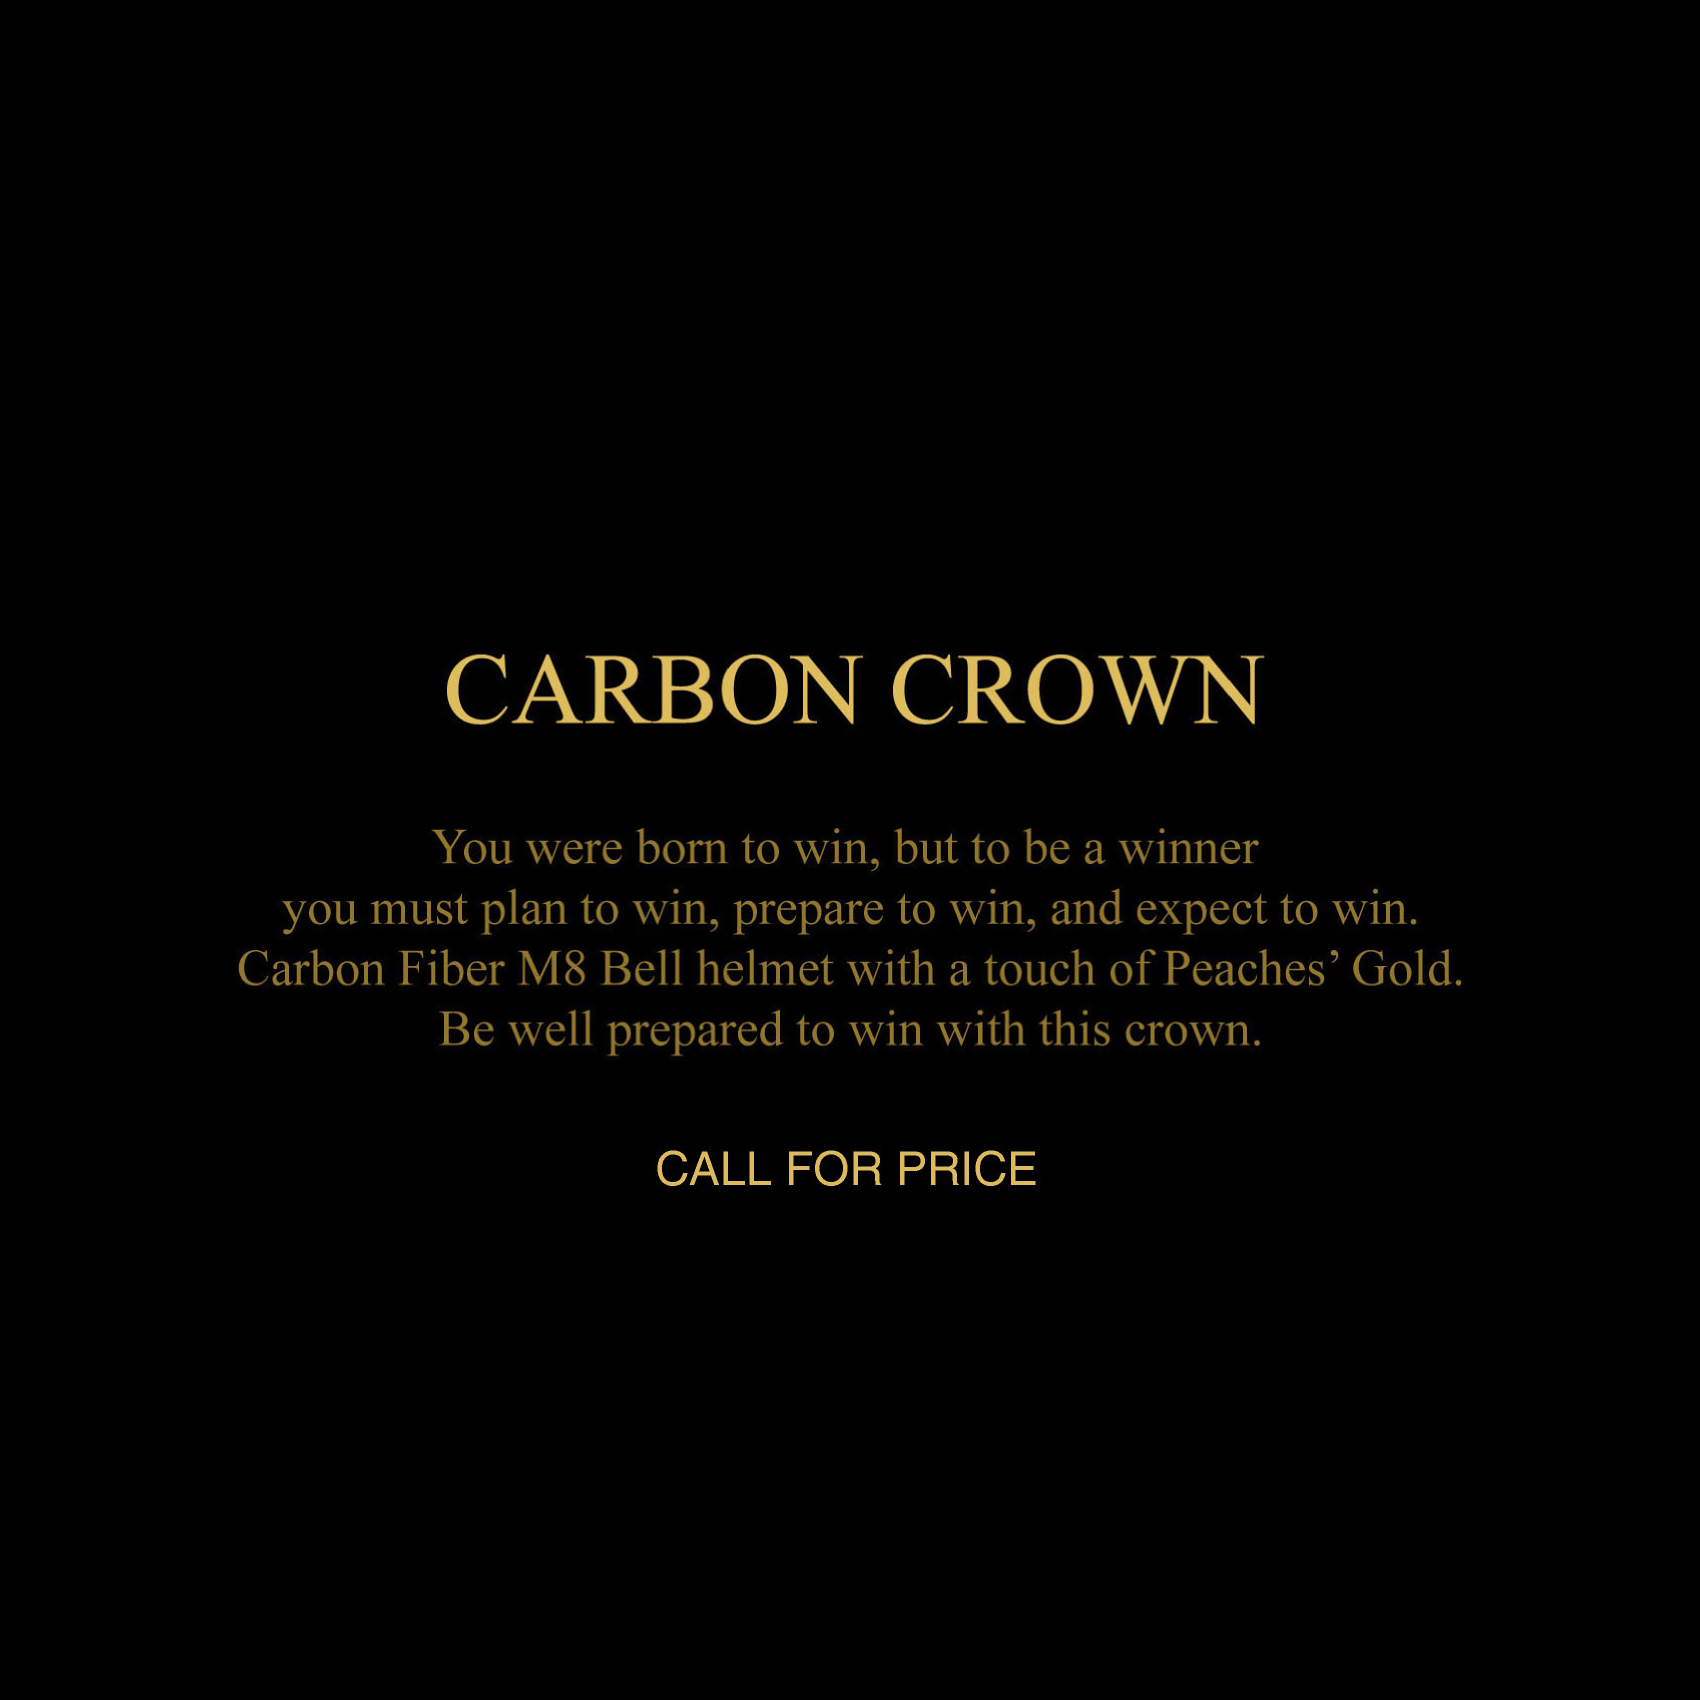 CARBON-CROWN-DES.jpg